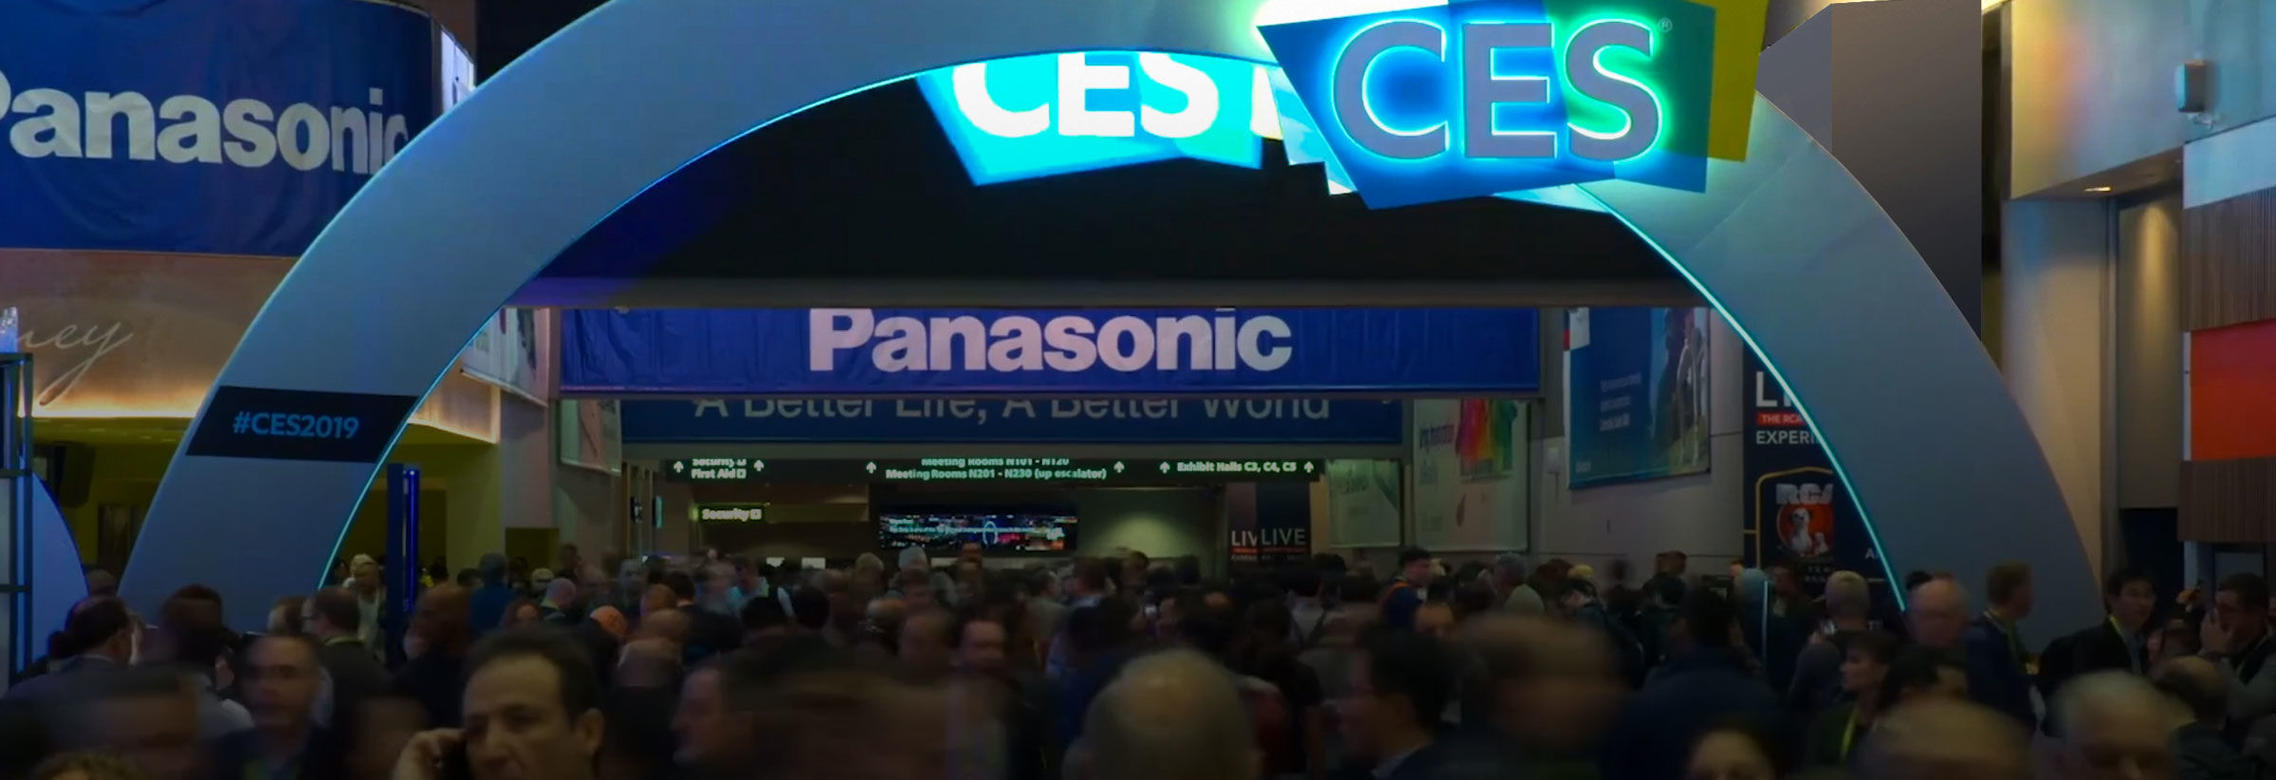 Panasonic - CES 2020: Watch for these tech trends